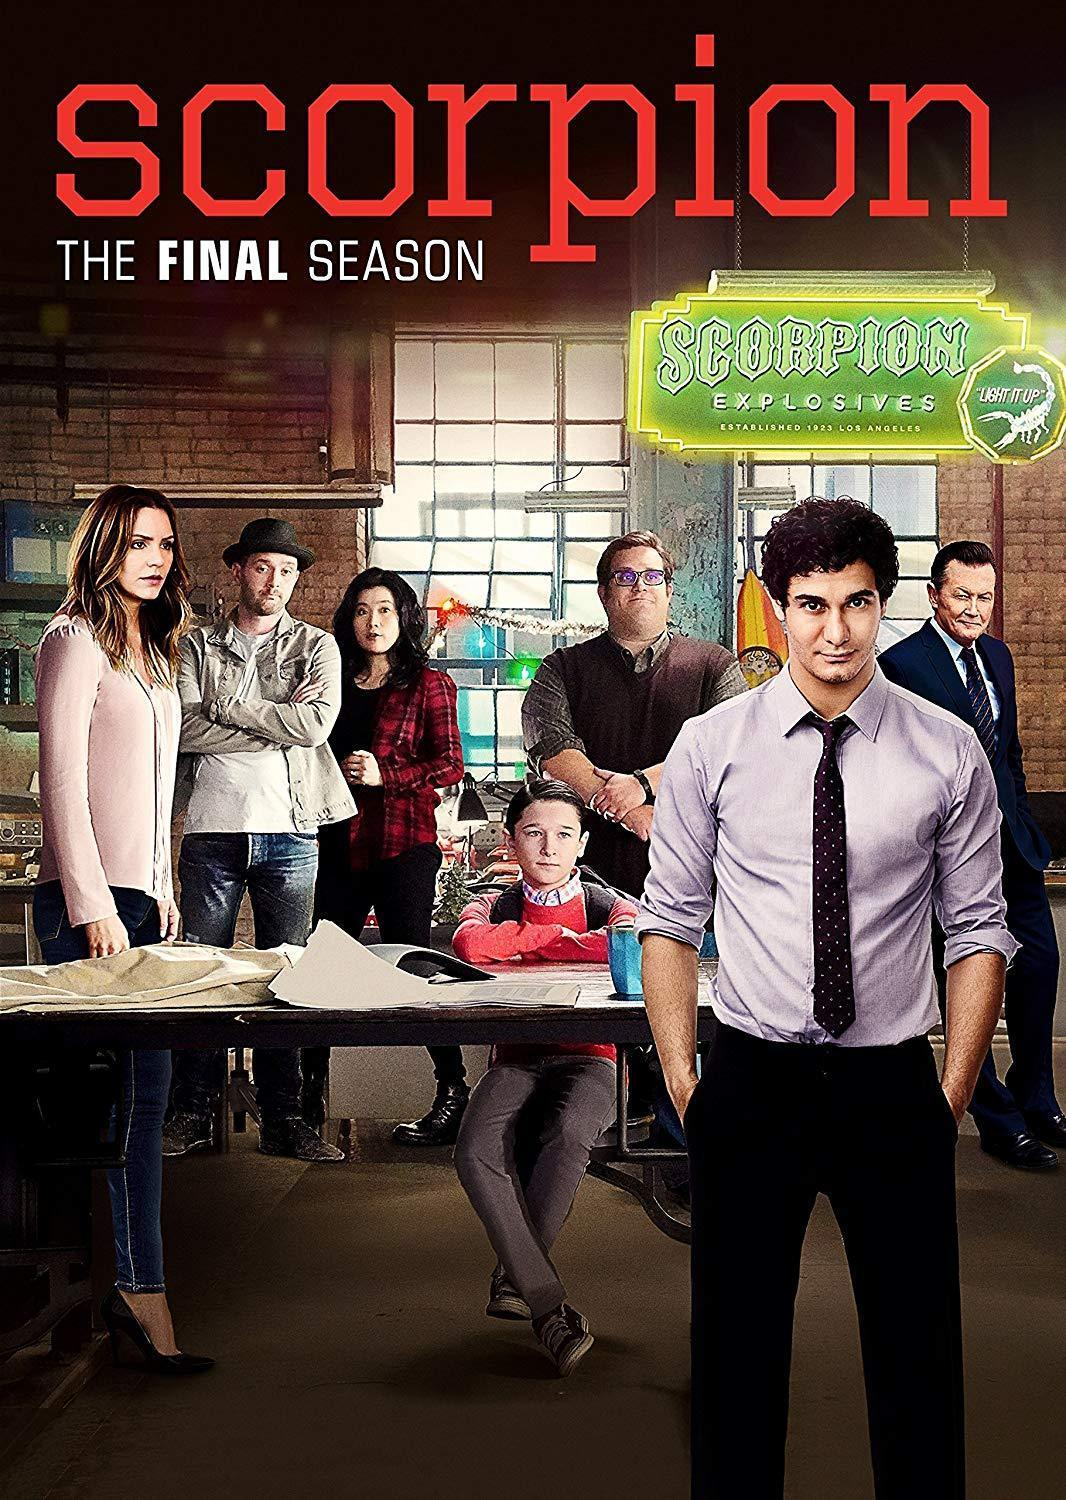 Scorpion Season 4 DVD - DVDsHQ